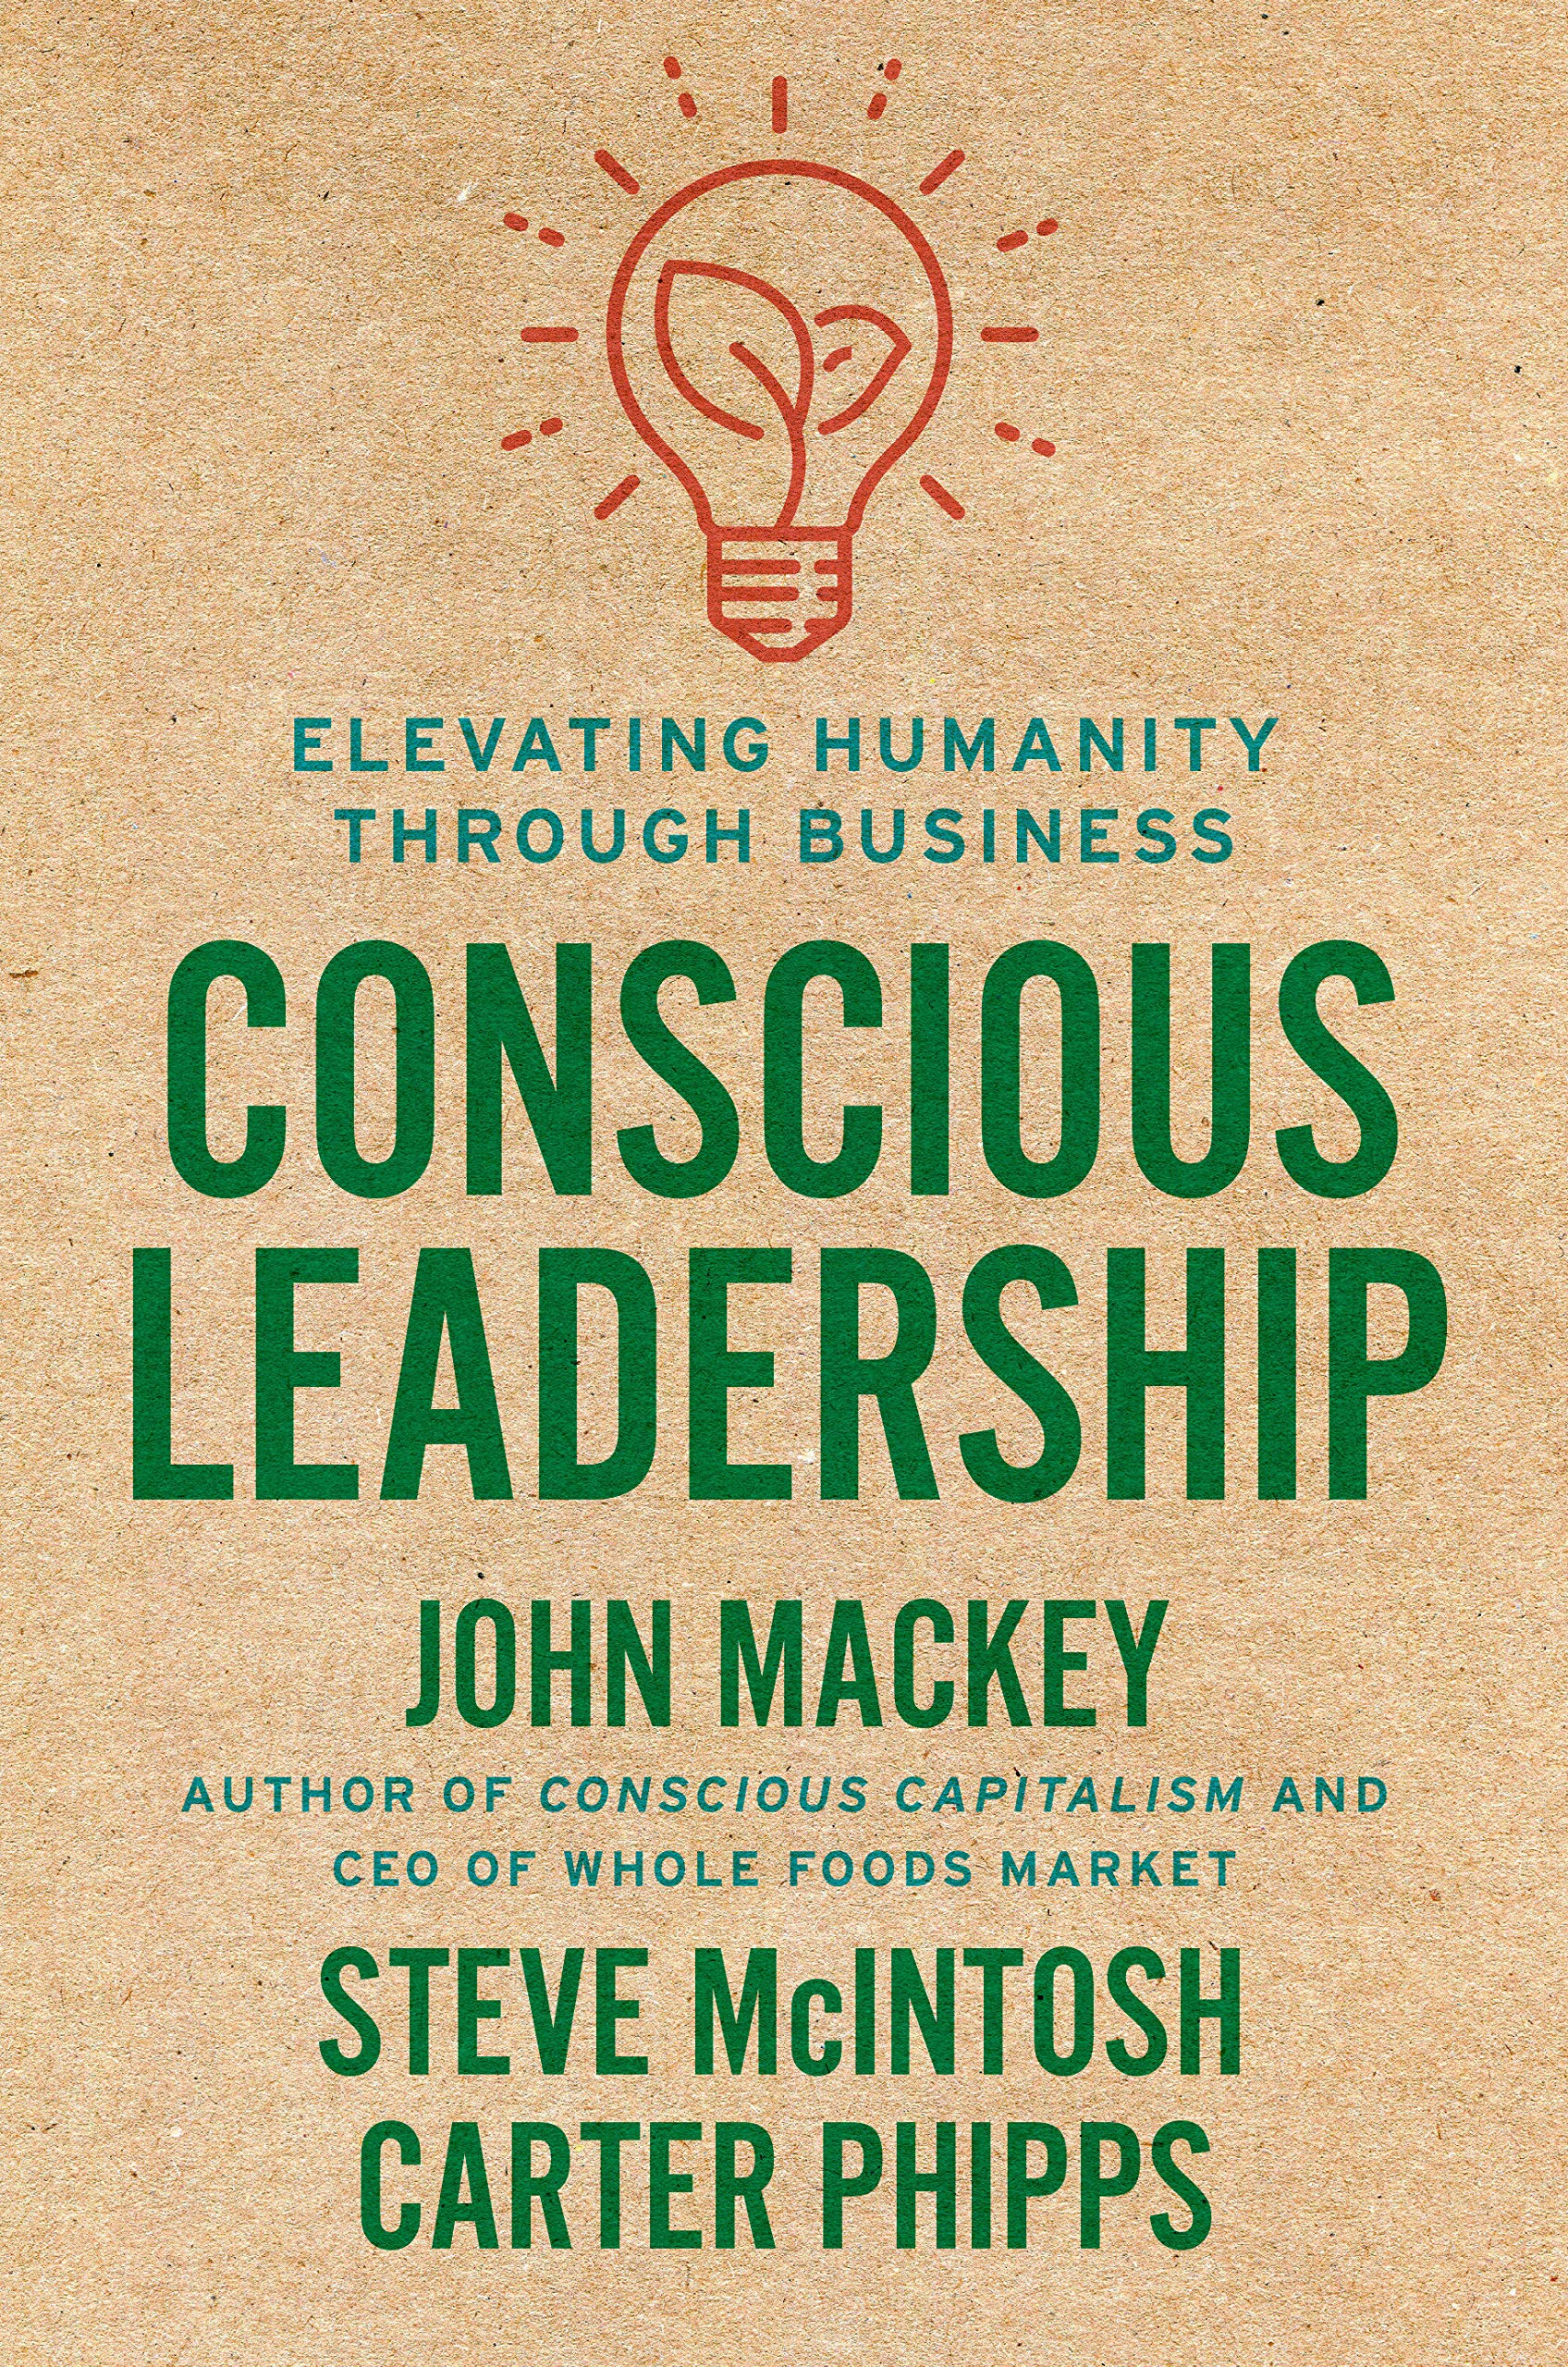 Conscious Leadership: Elevating Humanity Through Business ...